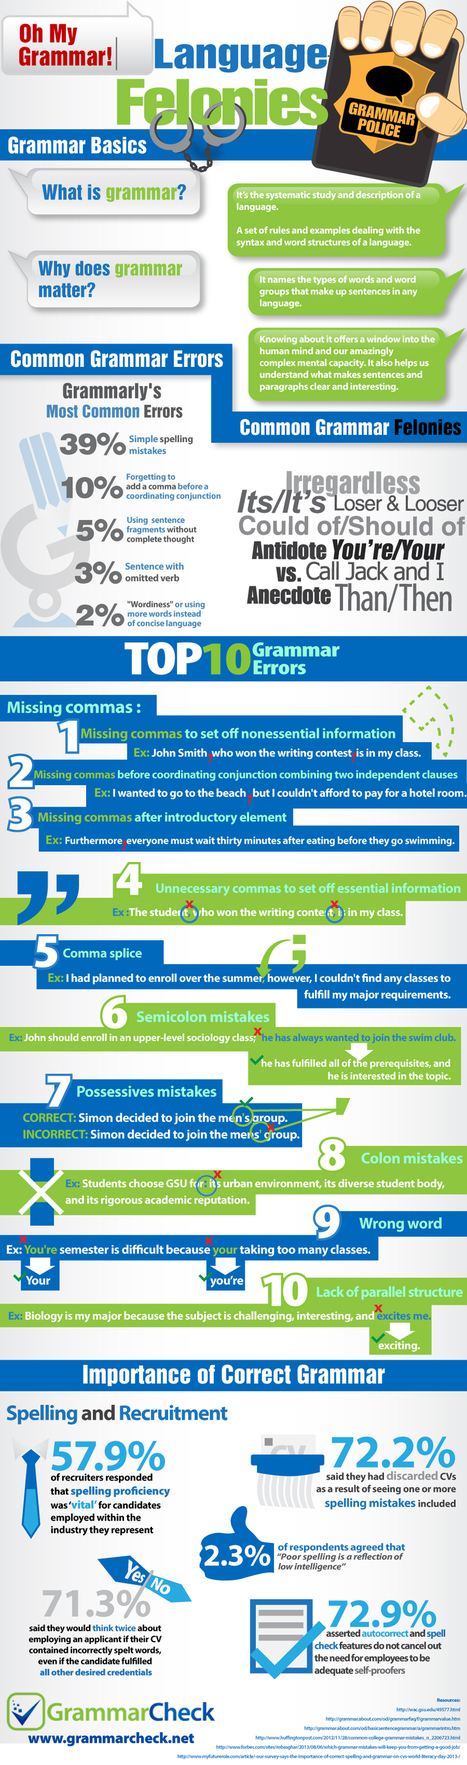 Oh My Grammar!  Language Felonies: Top 10 Grammar Errors, Common Mistakes, and the Importance of Correct Grammar (Infographic) | Language,literacy and numeracy in all Training and assessment | Scoop.it